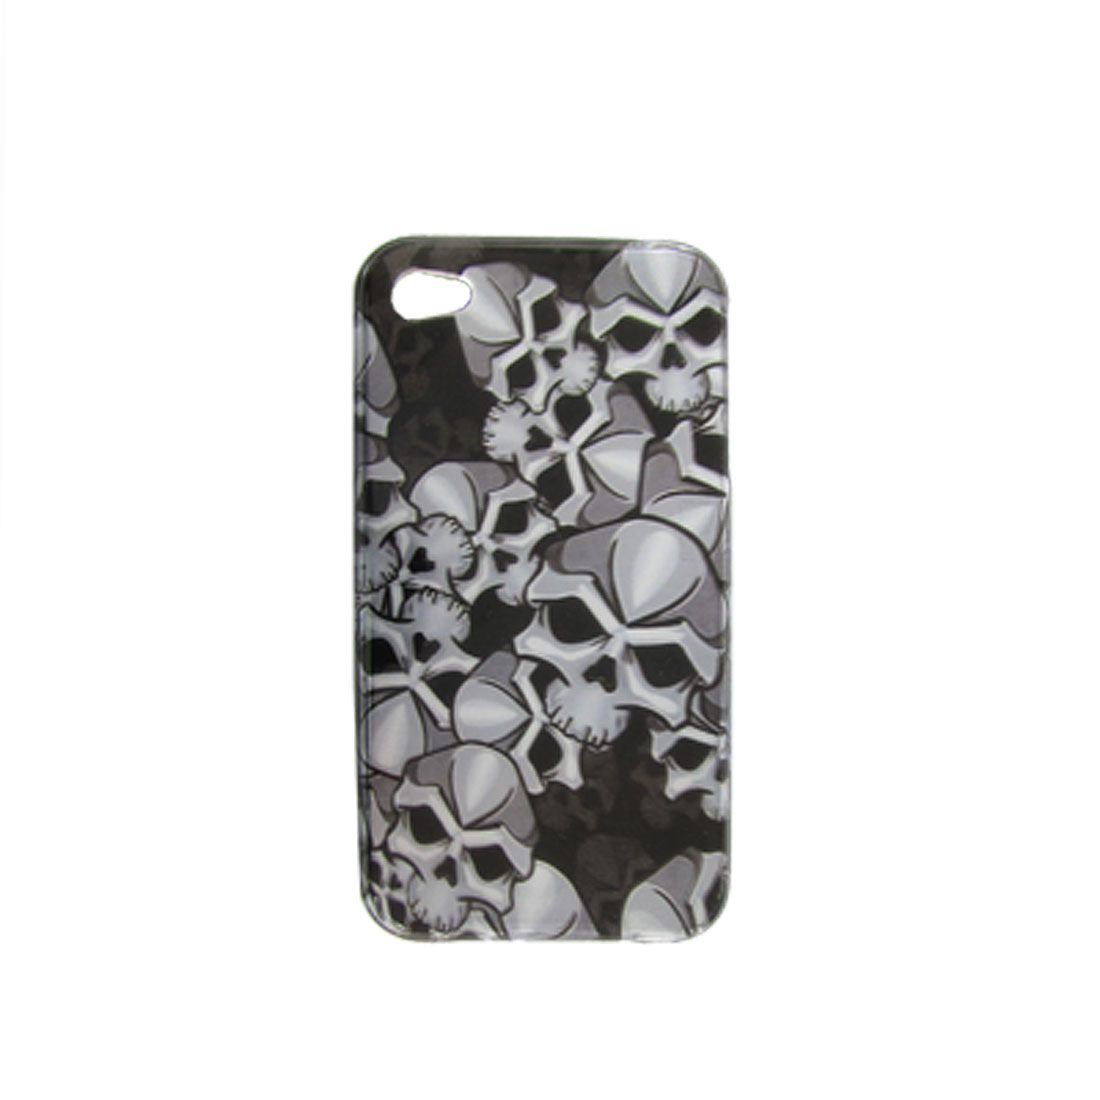 Skull Pattern Hard Plastic Protective Case Shell Cover for iPhone 4G 4